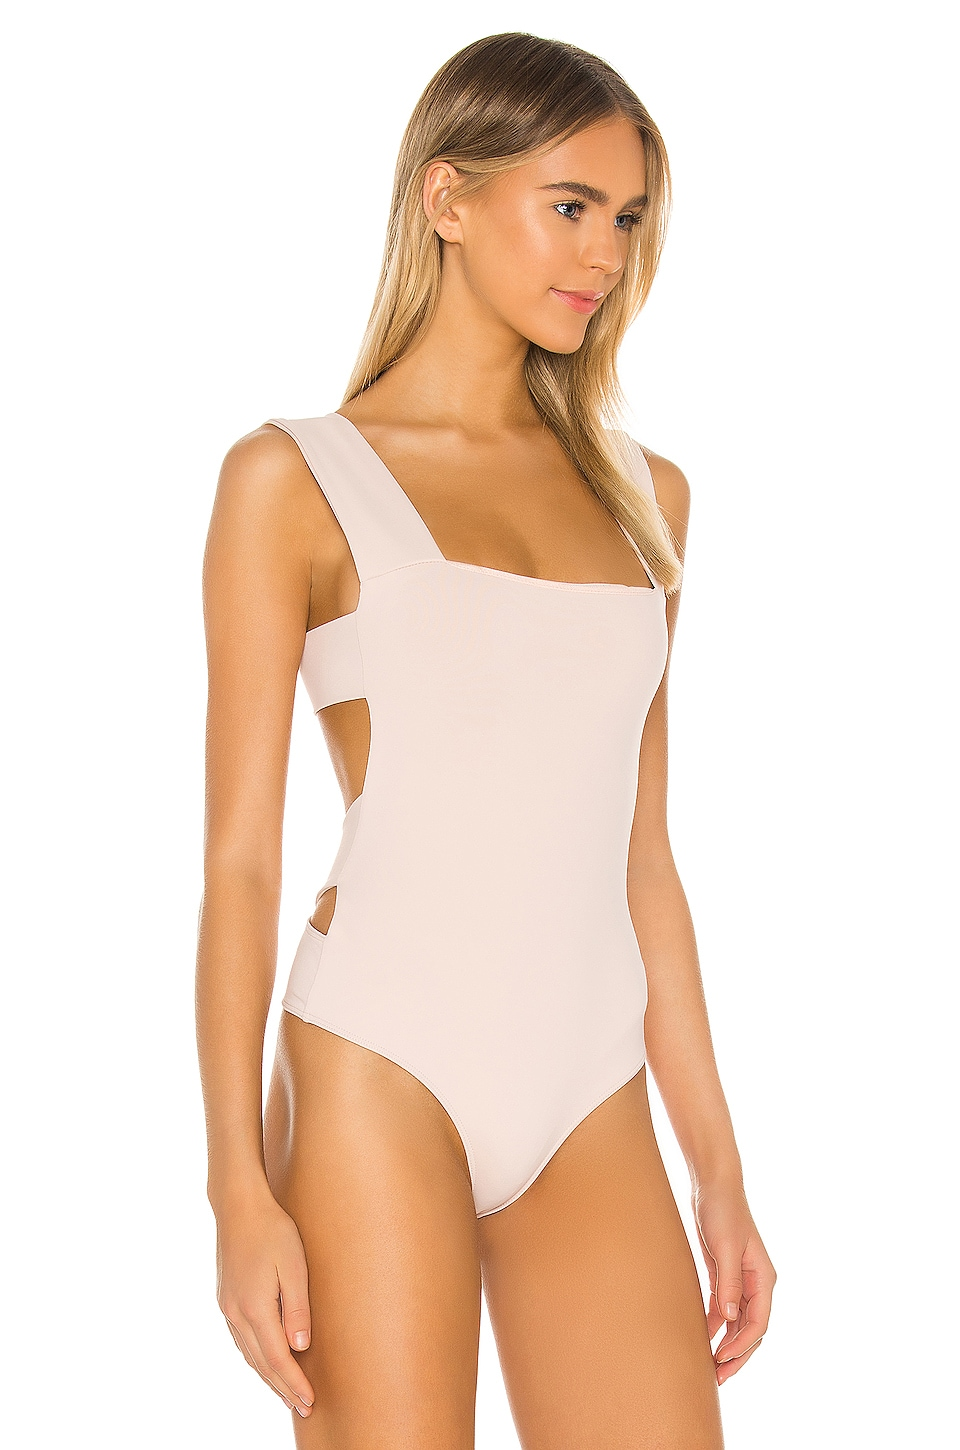 Oh Shes Strappy Bodysuit, view 3, click to view large image.